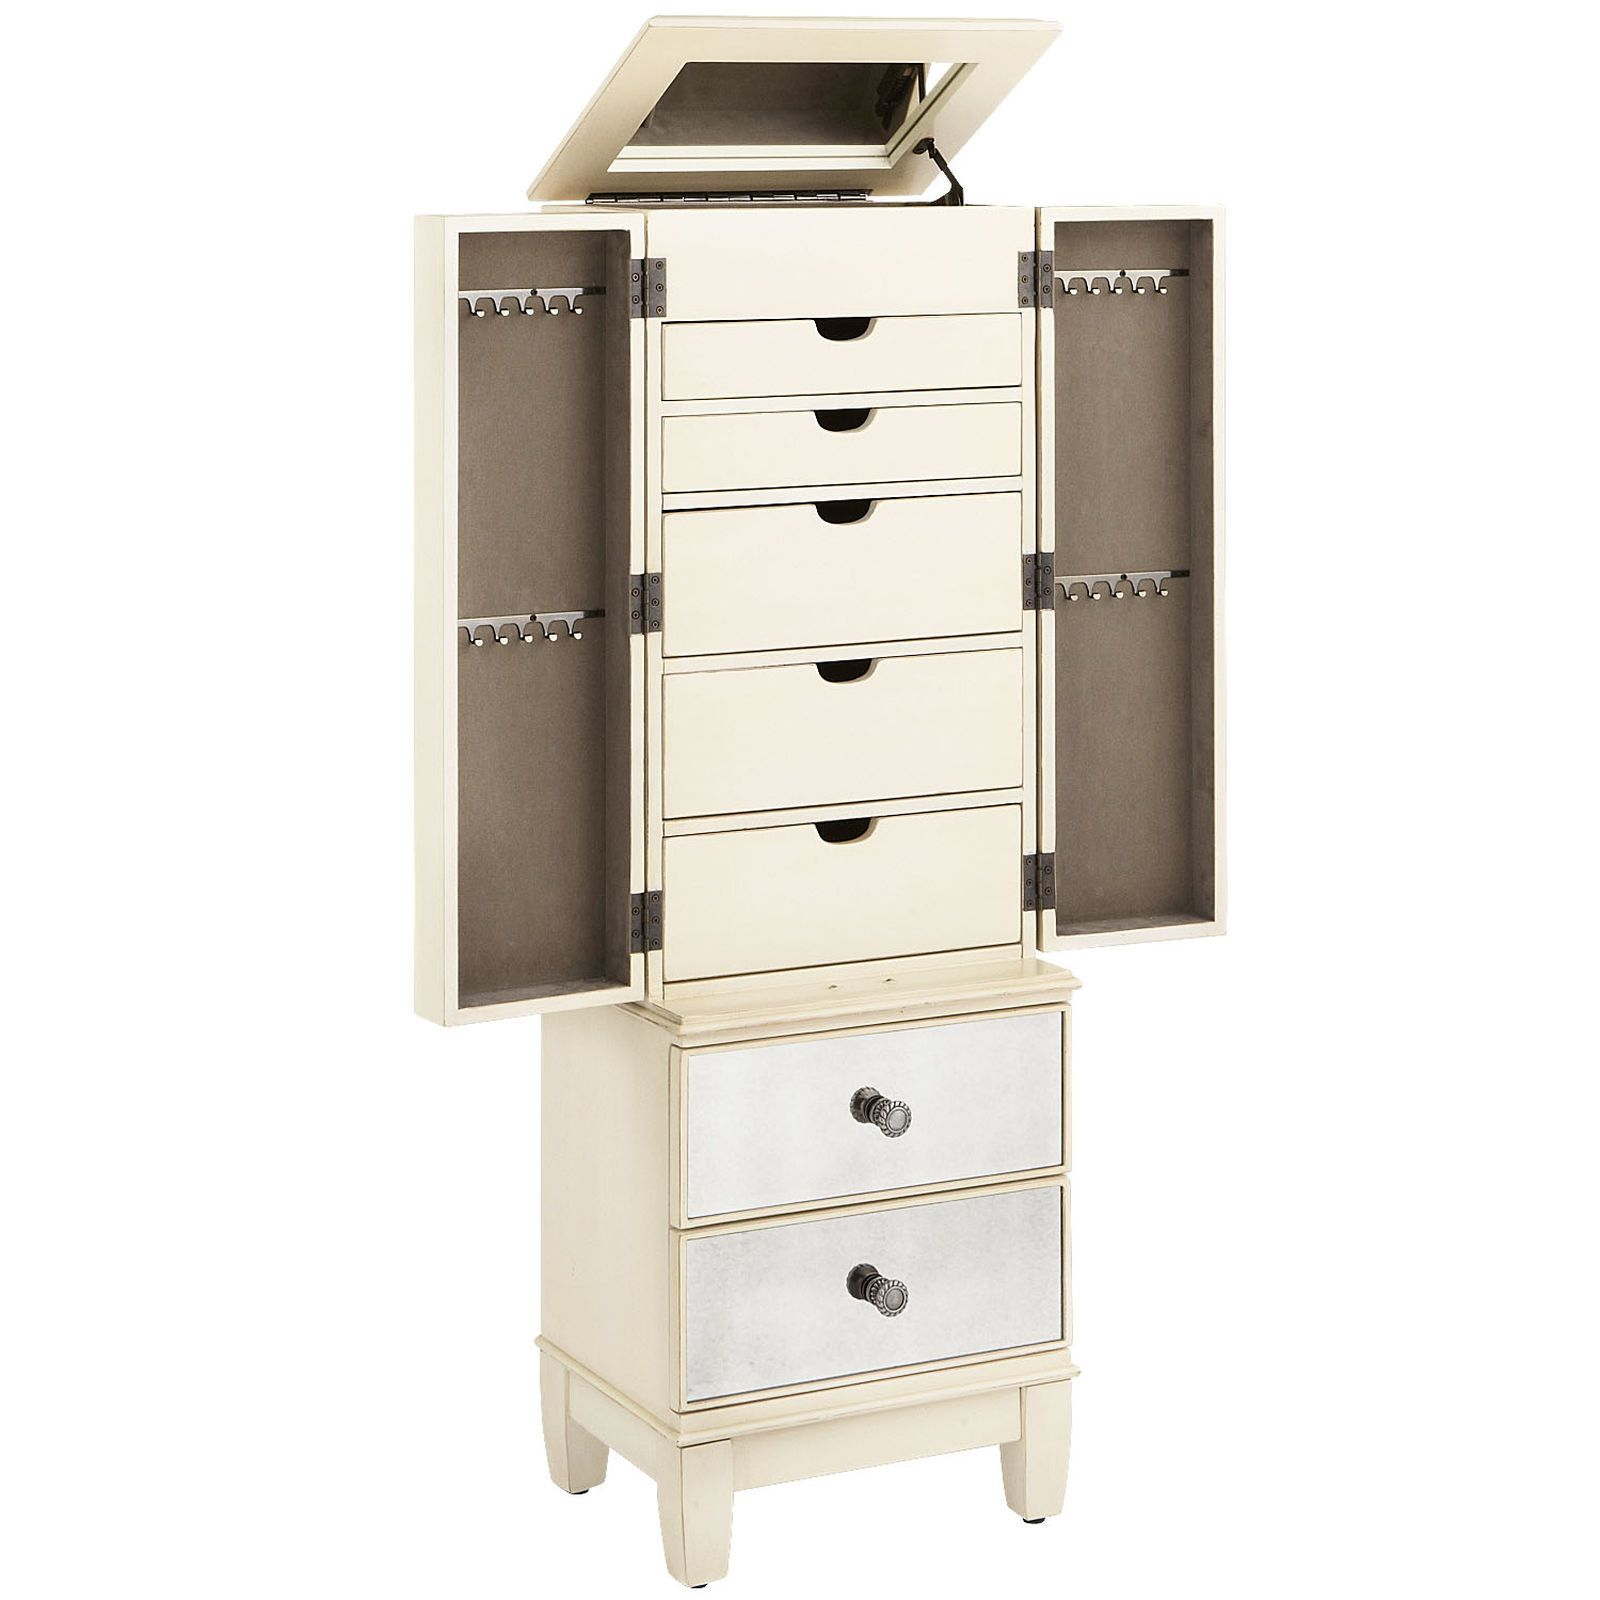 As glamorous as any star from Hollywood's Golden Era—yet as practical as we can make it—our Hayworth Jewelry Armoire is all about functional fashion. Handcrafted, hand-painted and covered in hand-cut beveled mirrors, it offers five felt-lined storage drawers, as well as ring rolls and necklace hooks to keep jewelry (and tiaras) organized and protected.